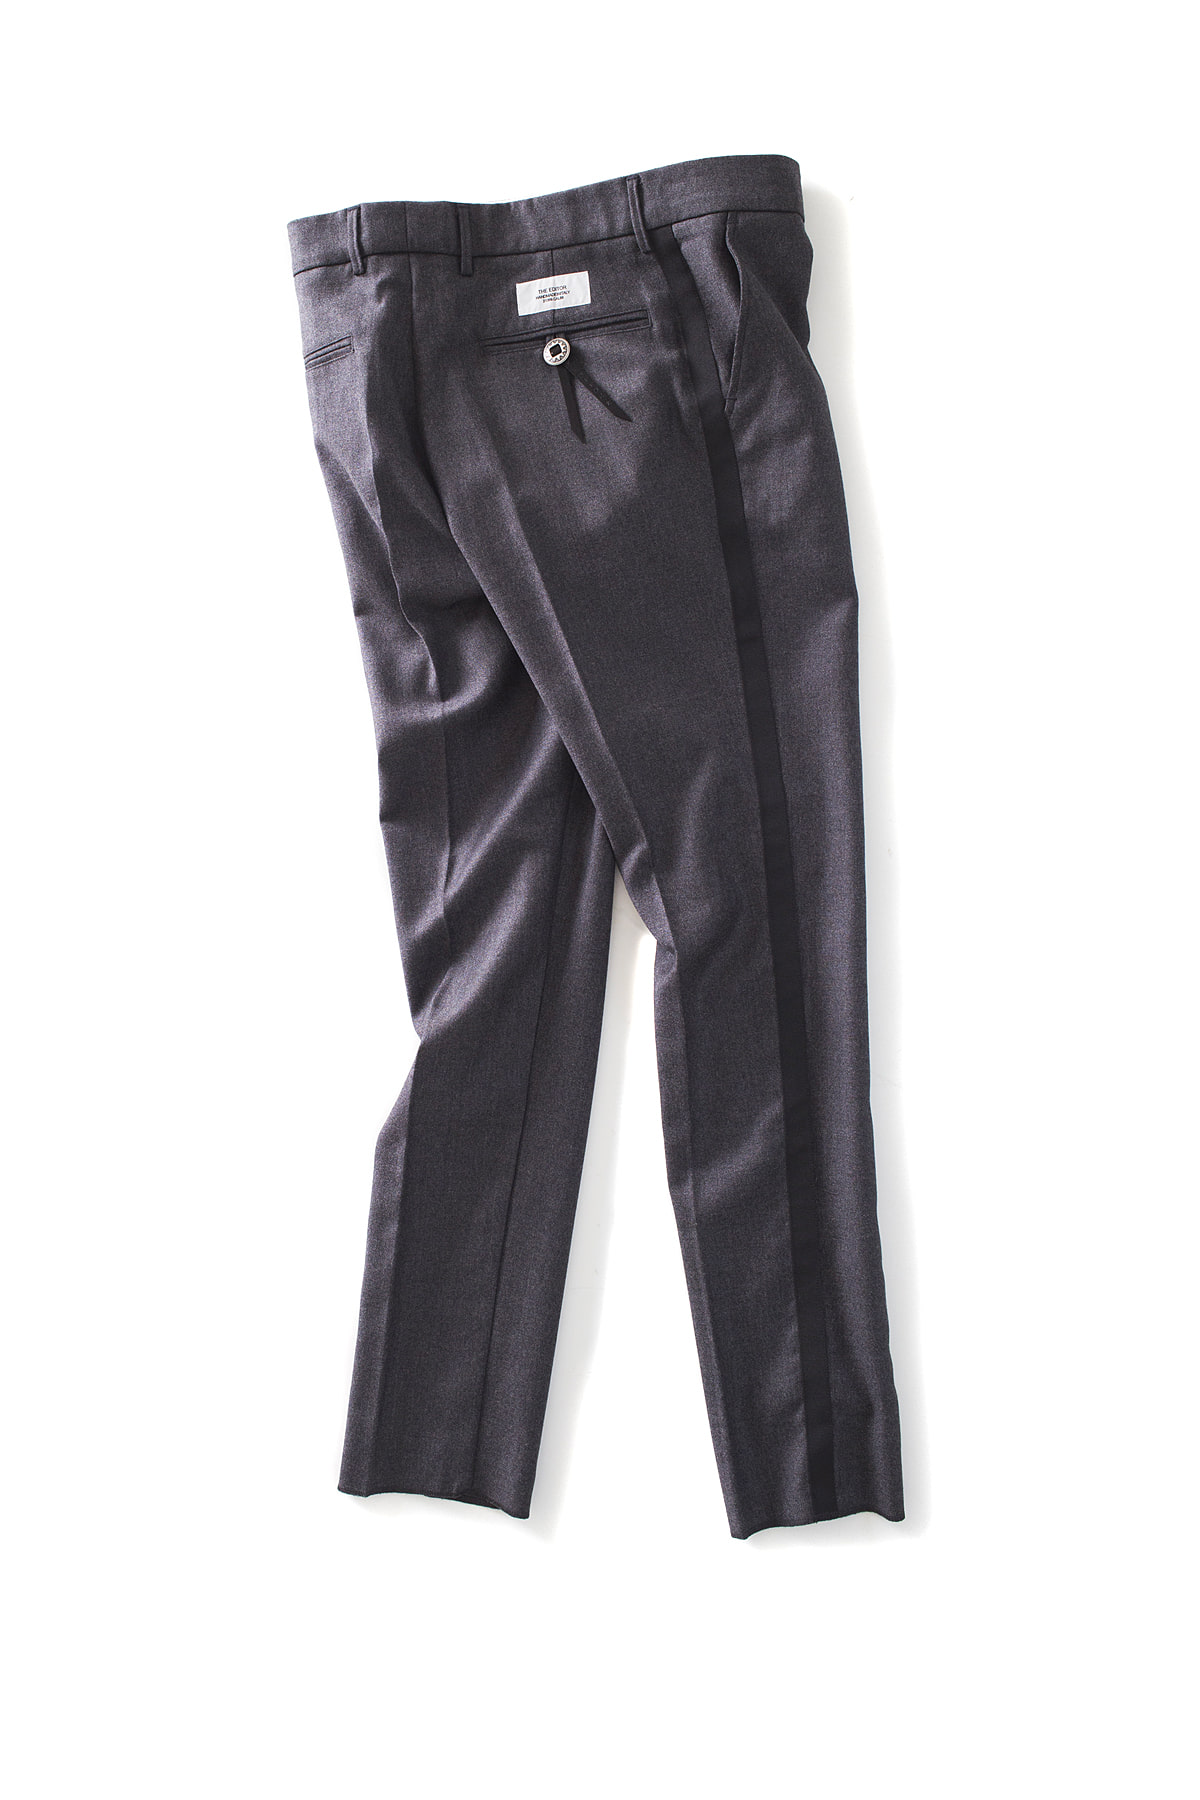 THE EDITOR : Line Trouser (Charcoal x Black Line)